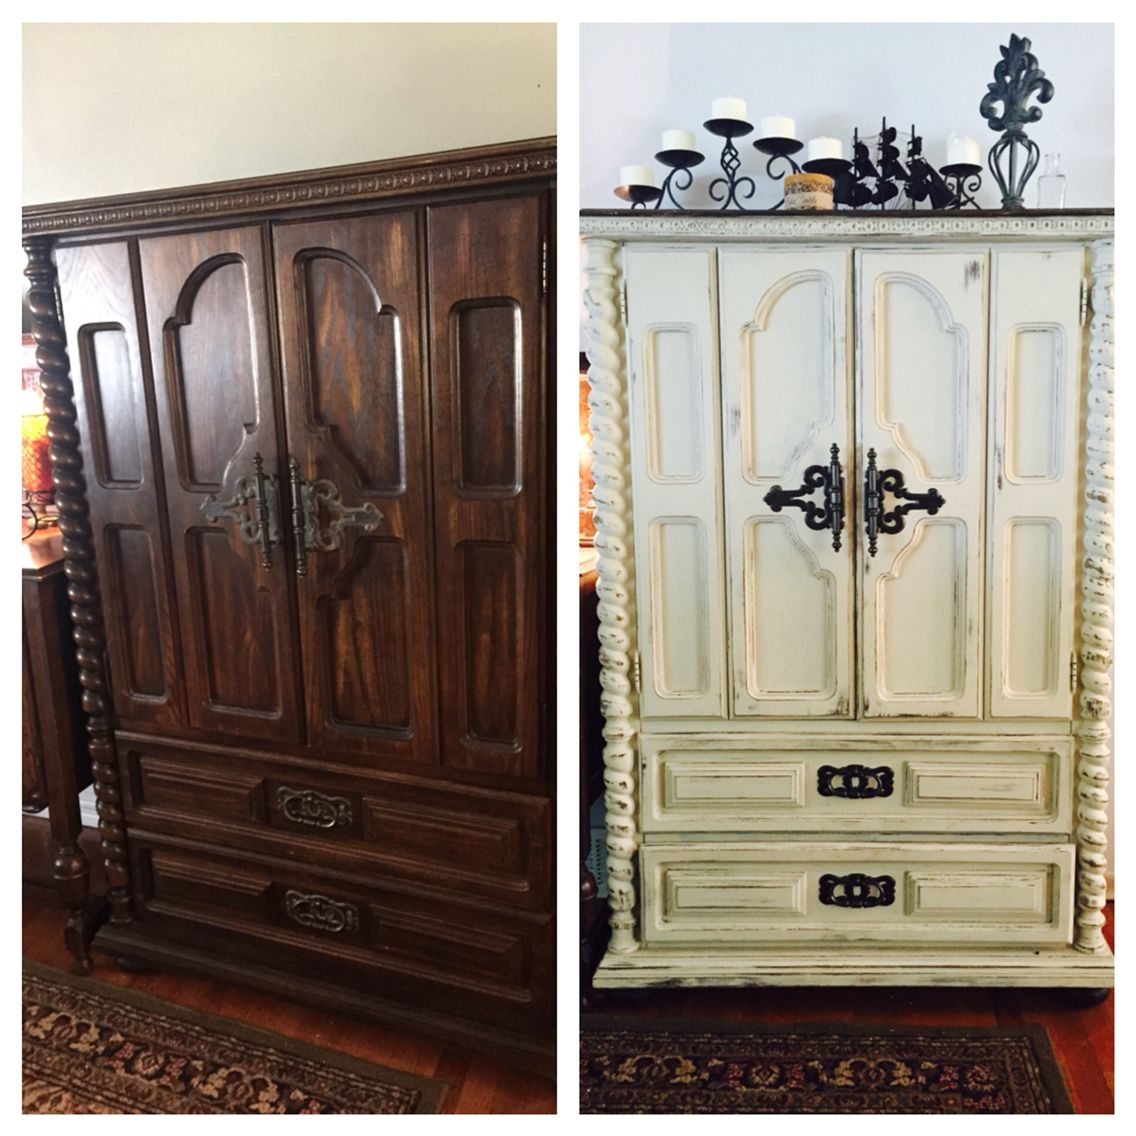 An armoire hides kid cubbies and storage for shoes in drawers . Painted in Annie Sloan ocre chalk paint to brighten the entry way & distressed for a shabby look  and sealed in clear. The hardware was unscrewed and spray painted with a primer metallic black paint & sealed in clear then reapplied for a nice contrast .